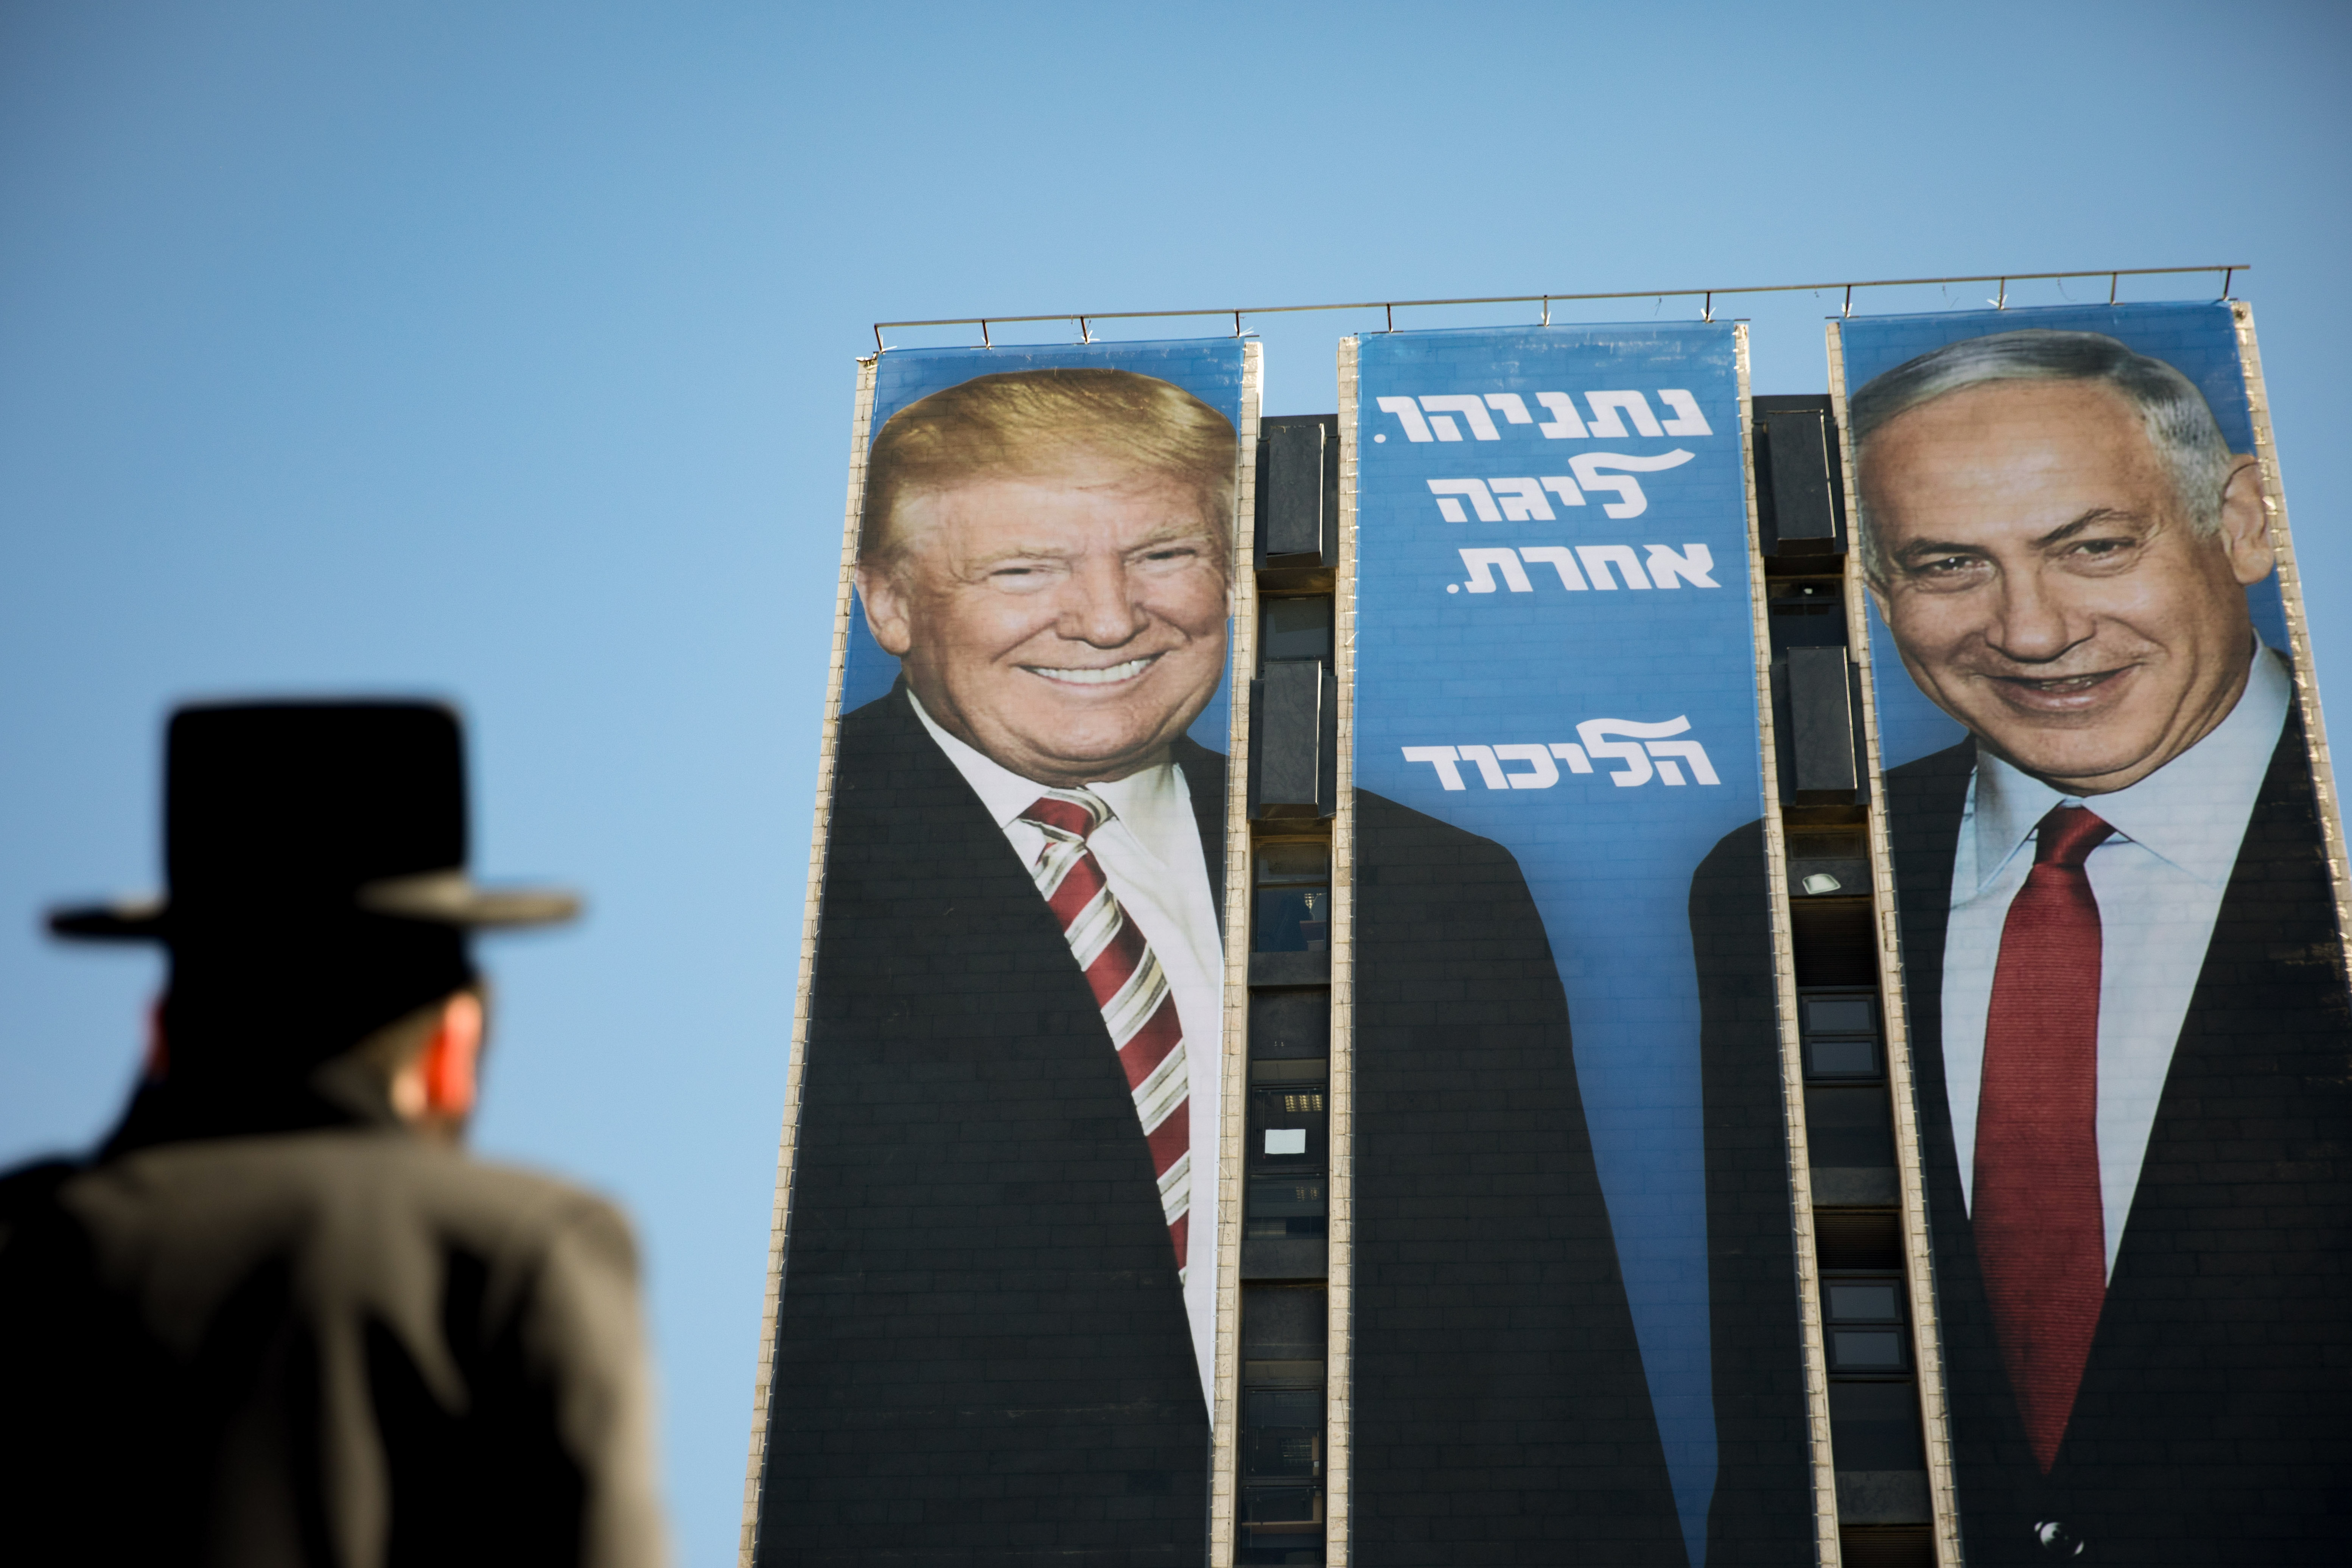 Trump says US should recognize Israeli sovereignty in Golan Heights